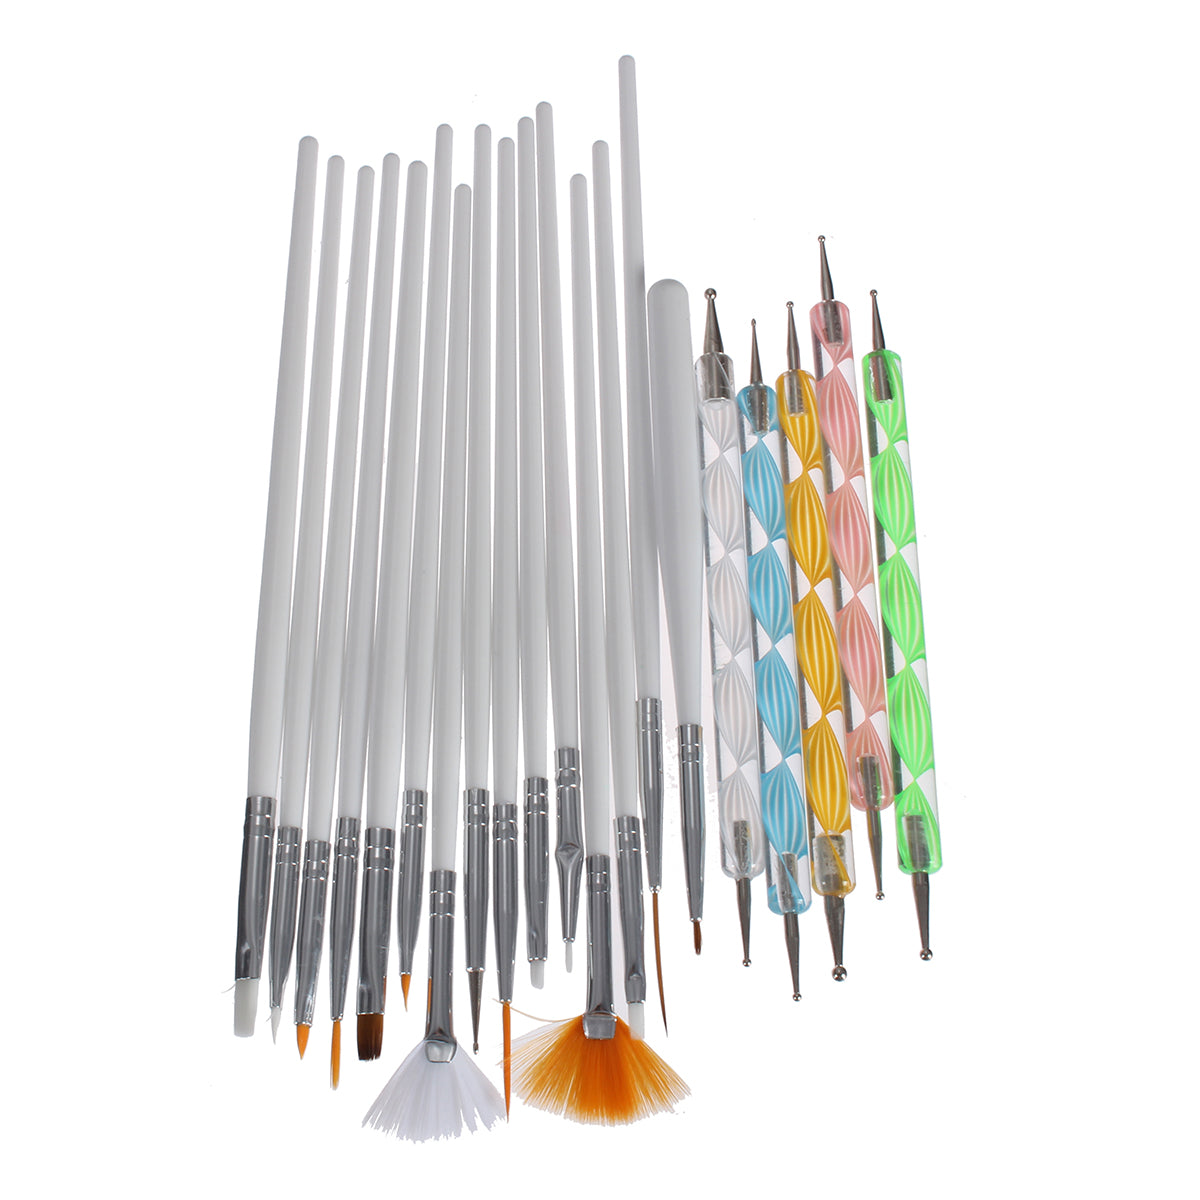 50cm Easy Suddenly Pop Up Magic Trick Magician Props Details about  /Magic Appearing Wand 20″